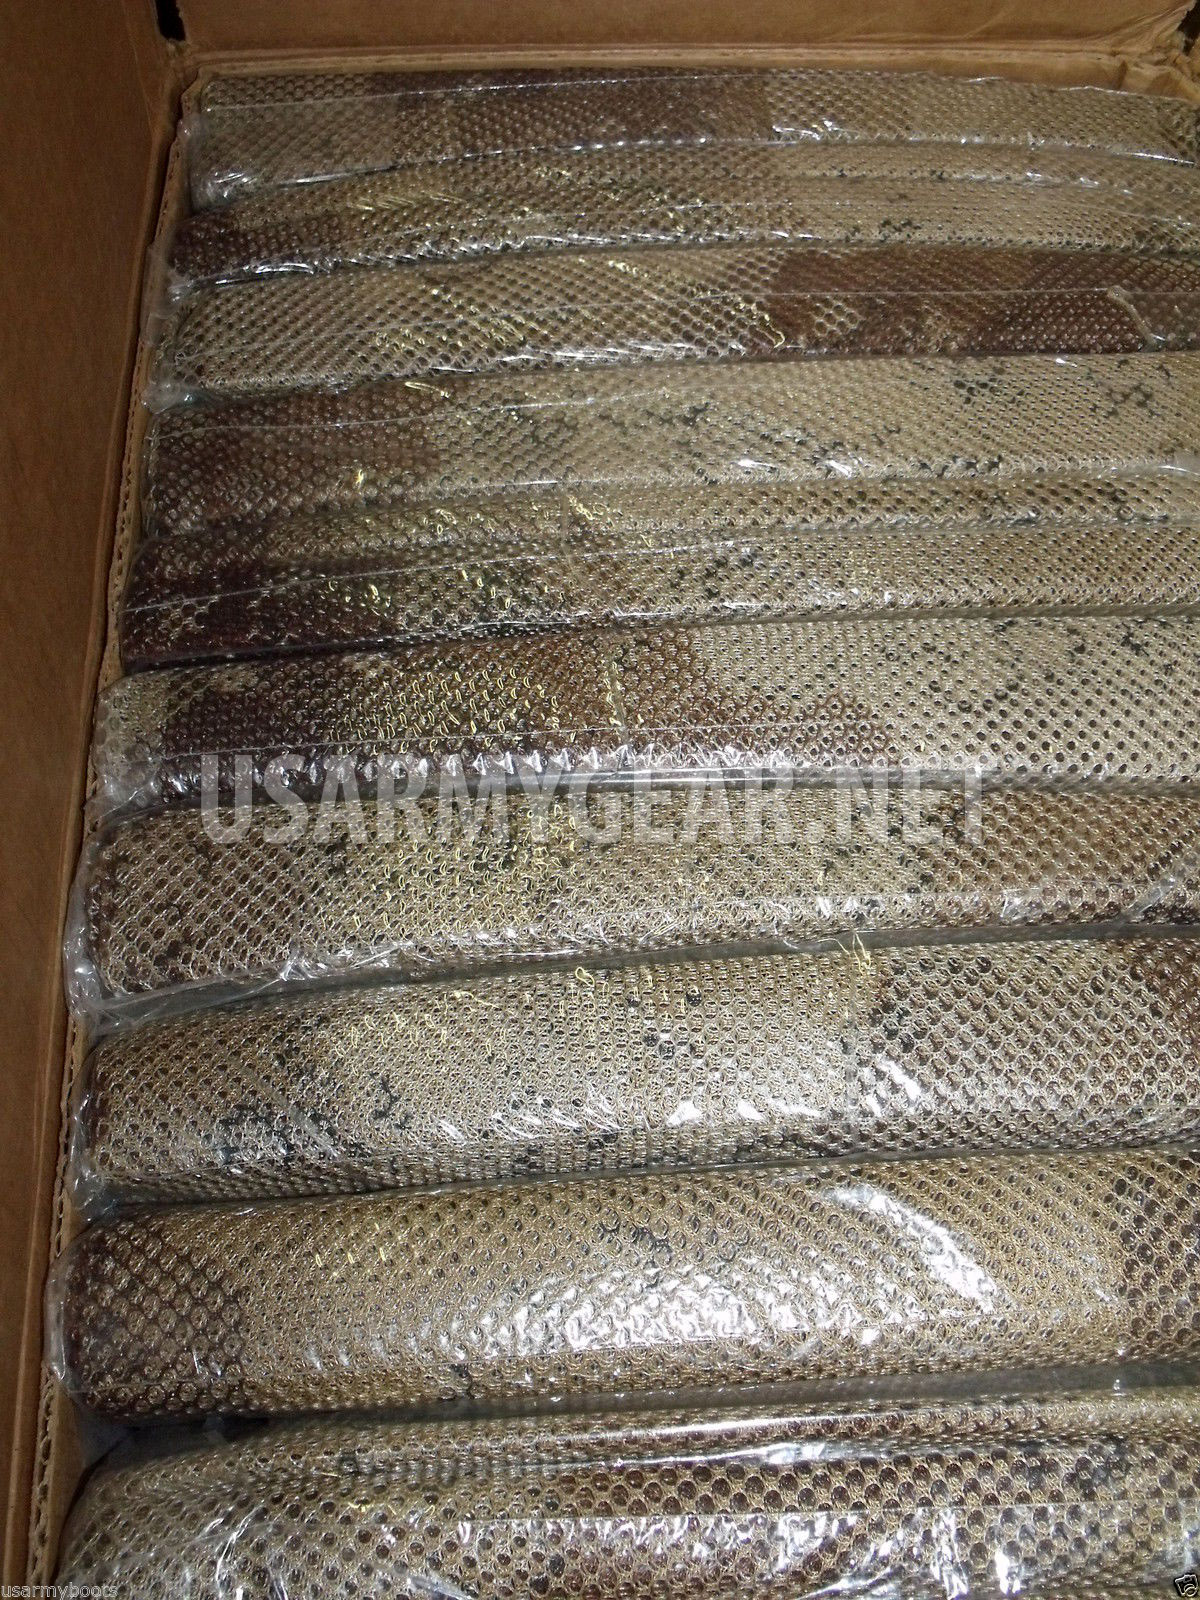 New Desert Camo Netting 5 X 8 Us Army Gear